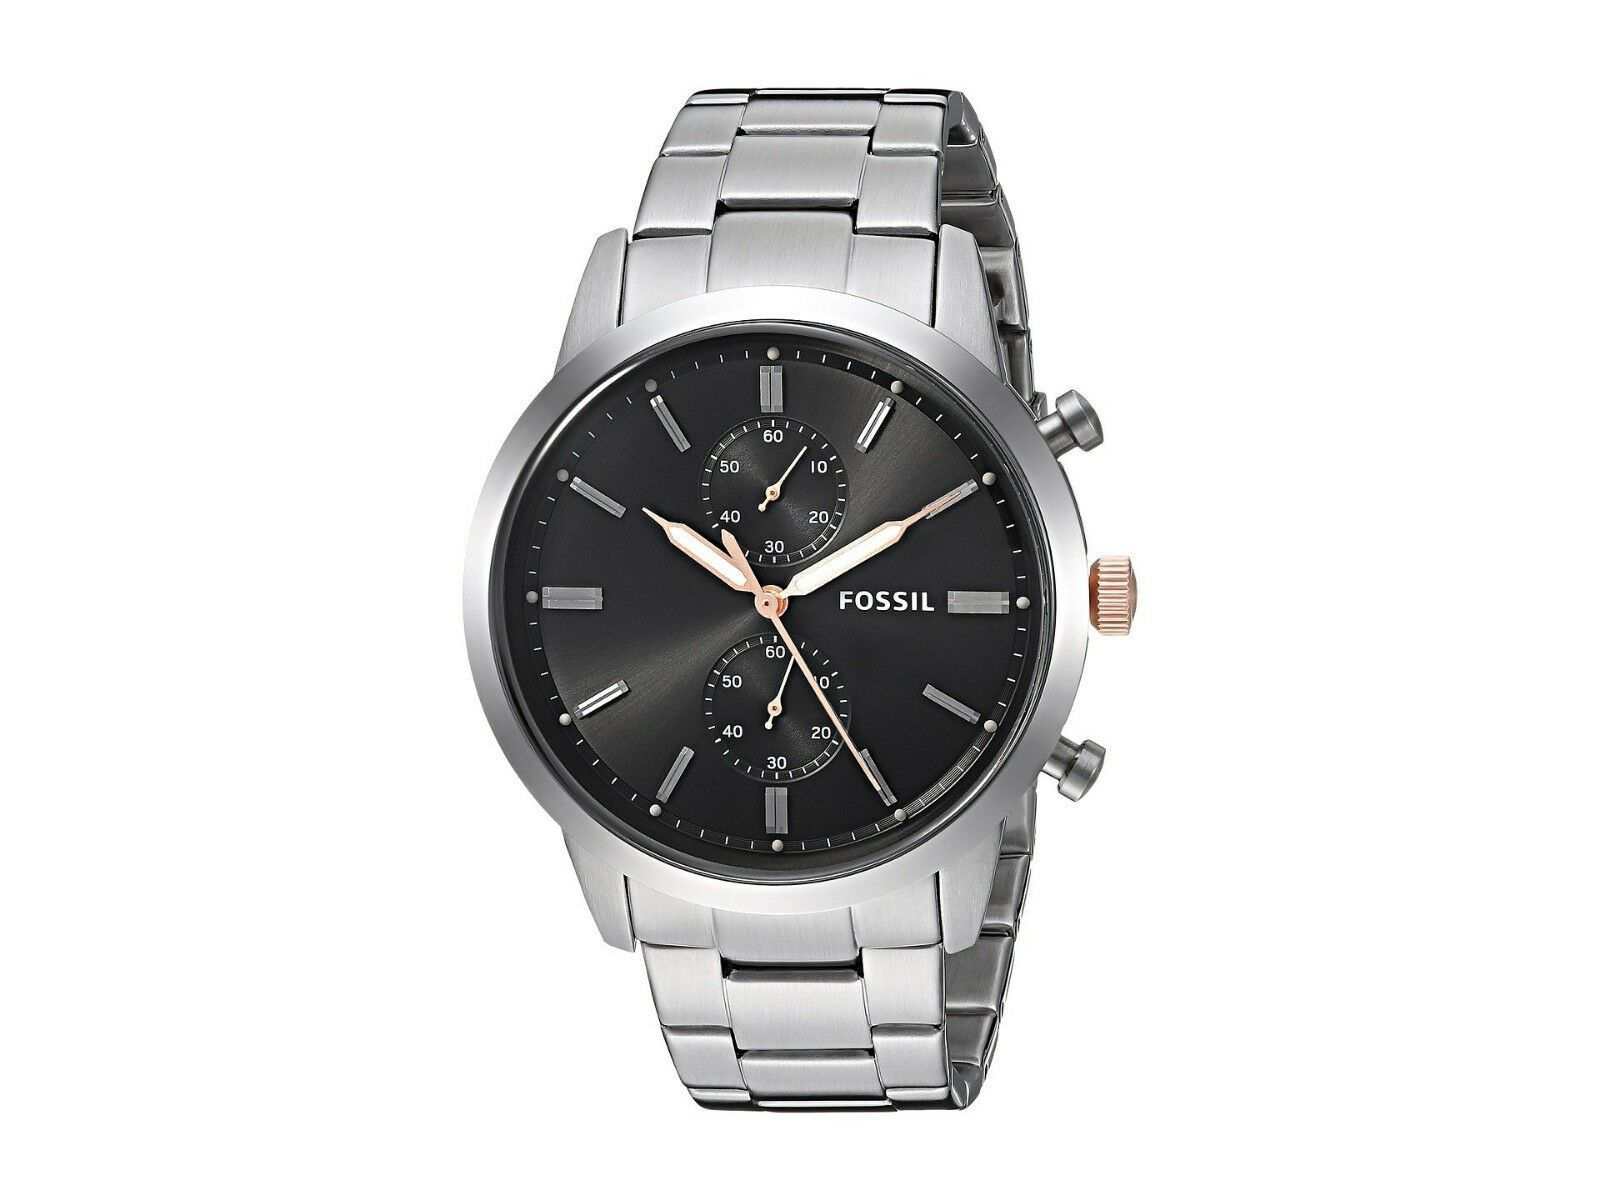 New Fossil Men's Townsman Chronograph Stainless Steel Watch Variety Color image 3